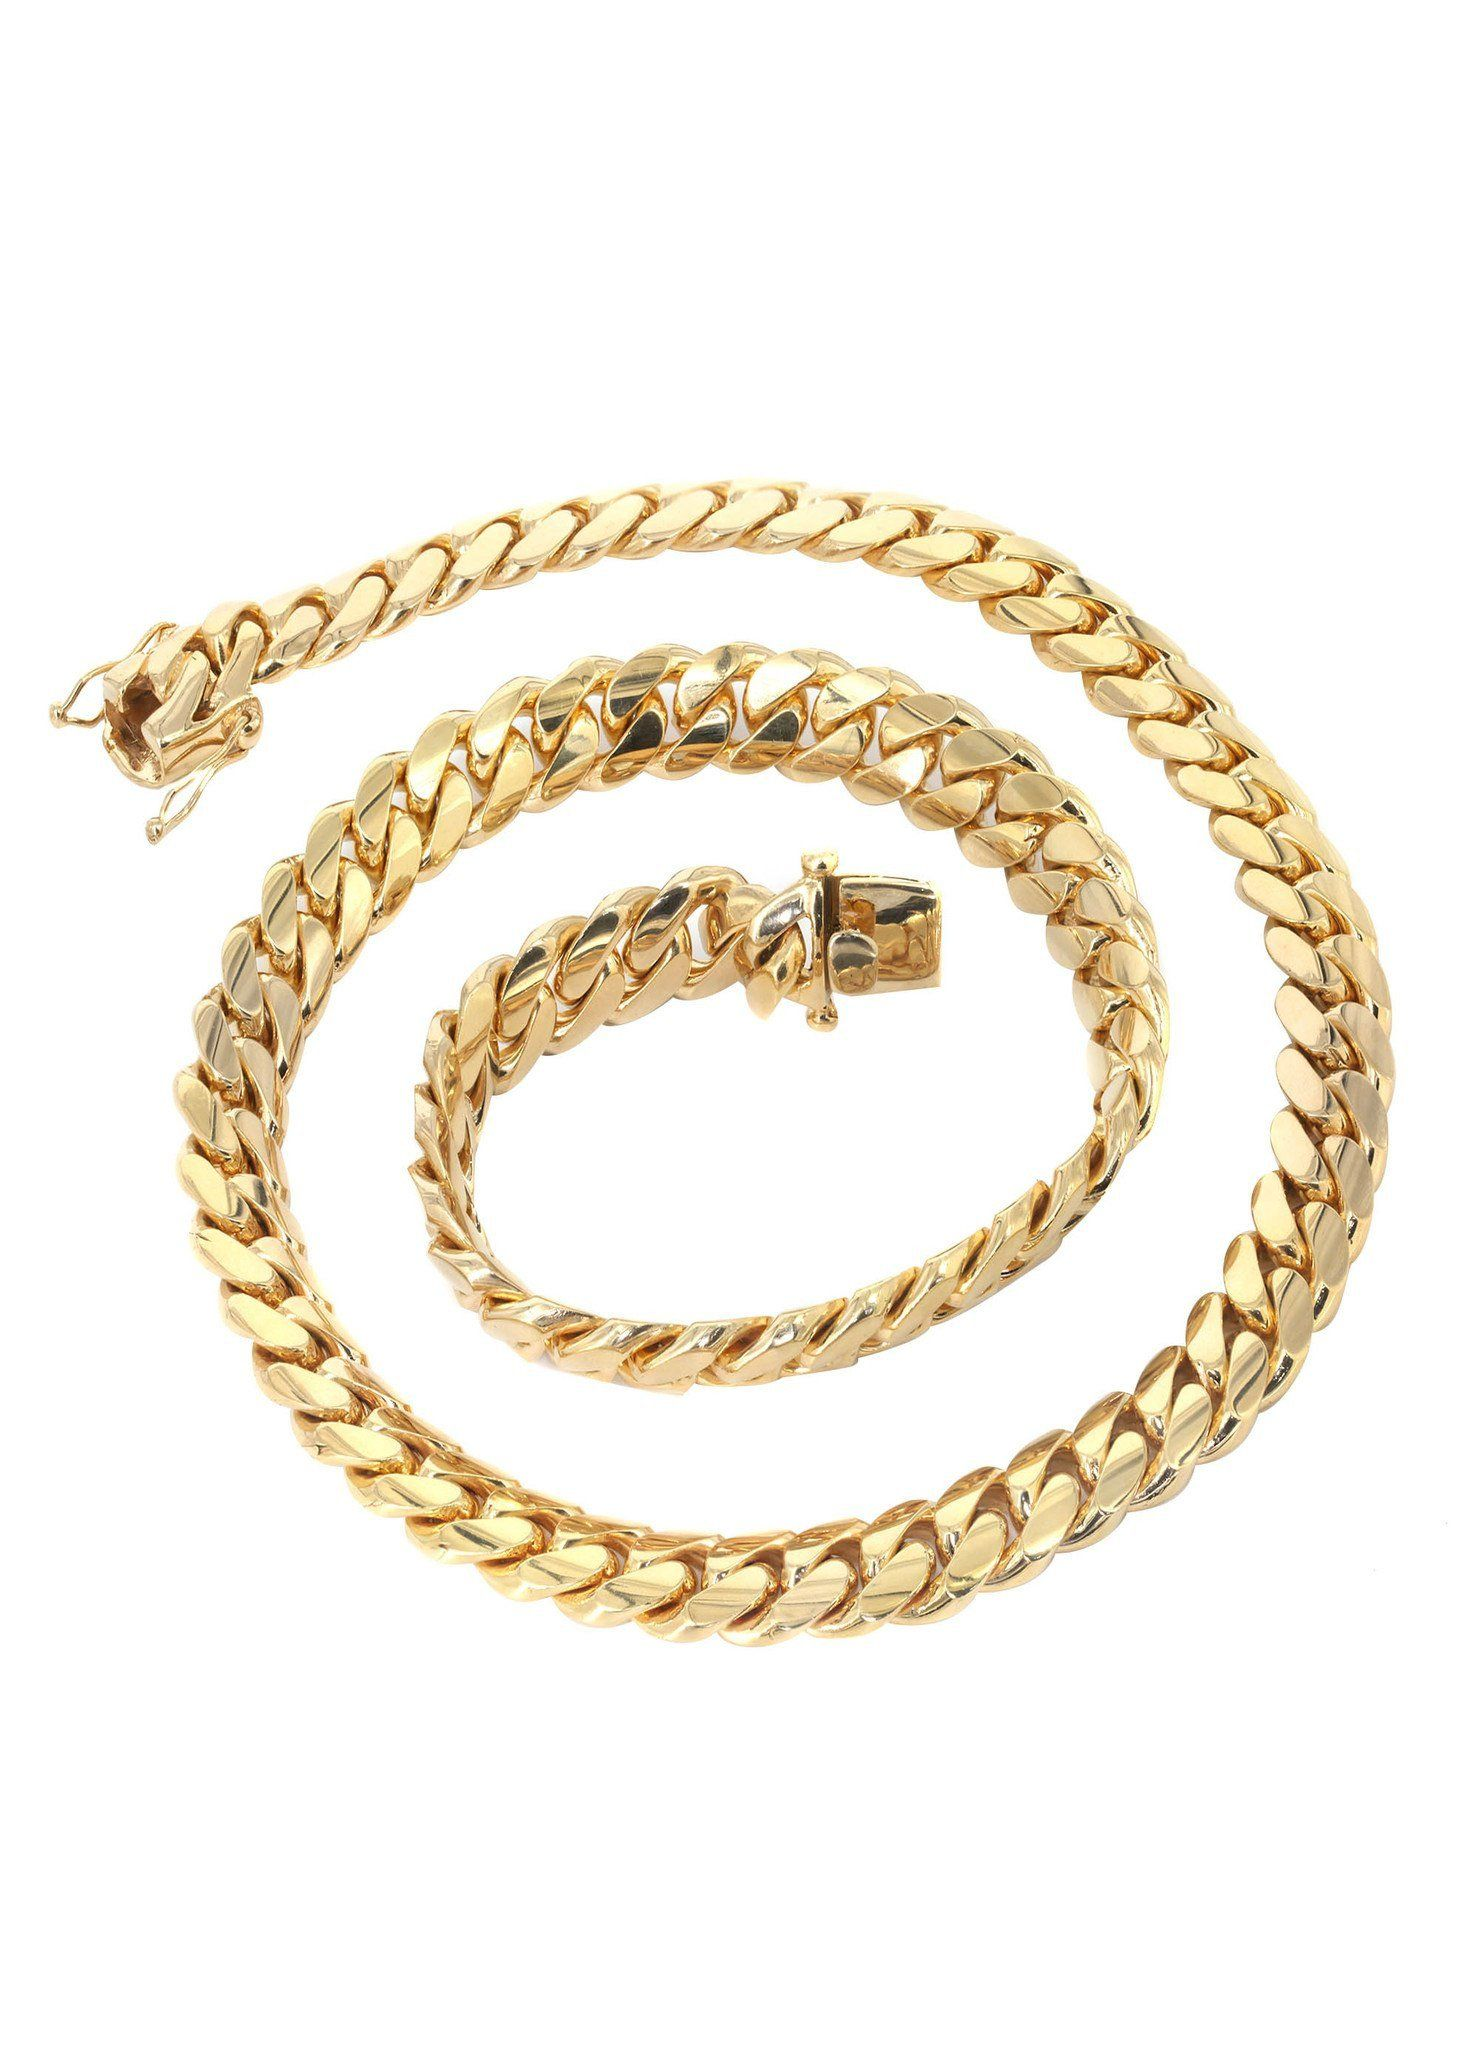 Mens Chain Solid Miami Cuban Link 10k Gold In 2020 Chains For Men Cuban Link Chain Gold Cuban Link Chain